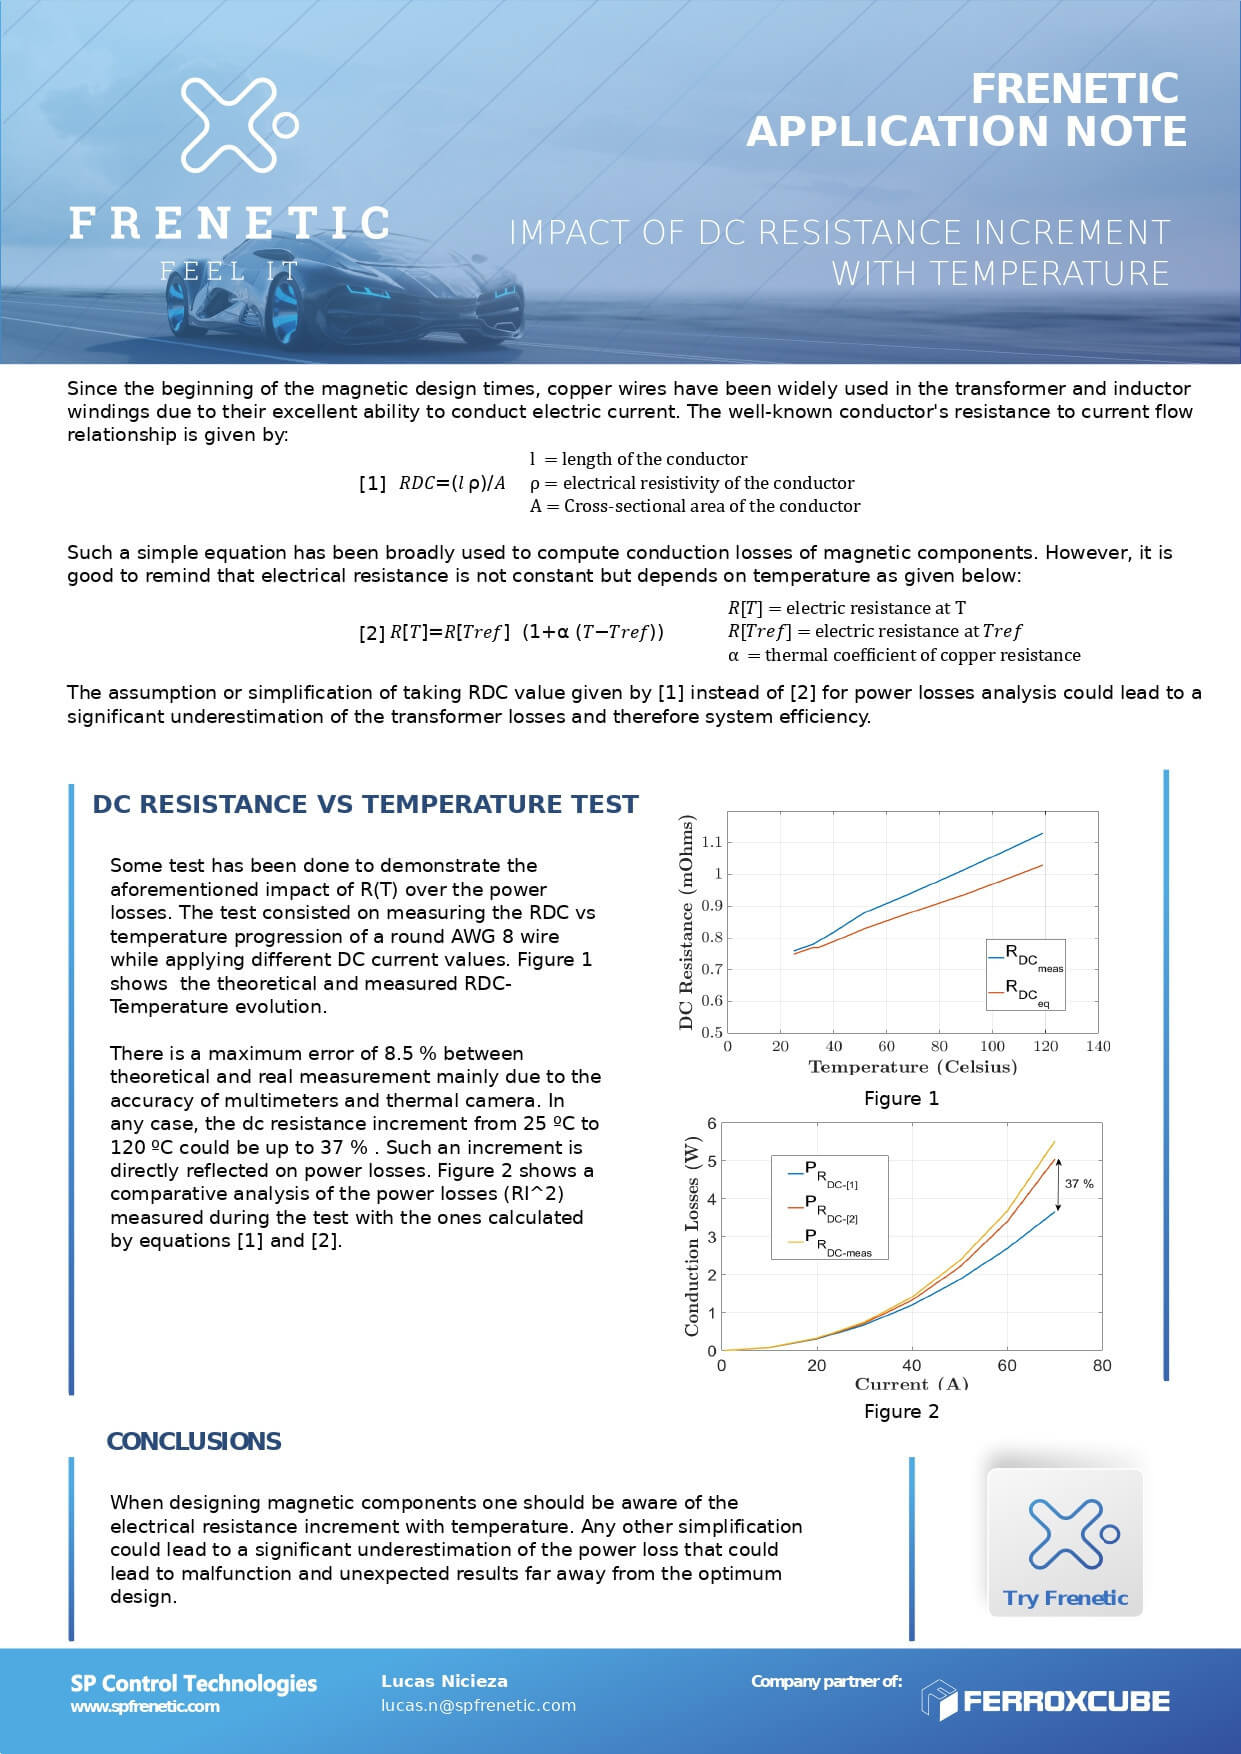 IMPACT OF DC RESISTANCE INCREMENT WITH TEMPERATURE